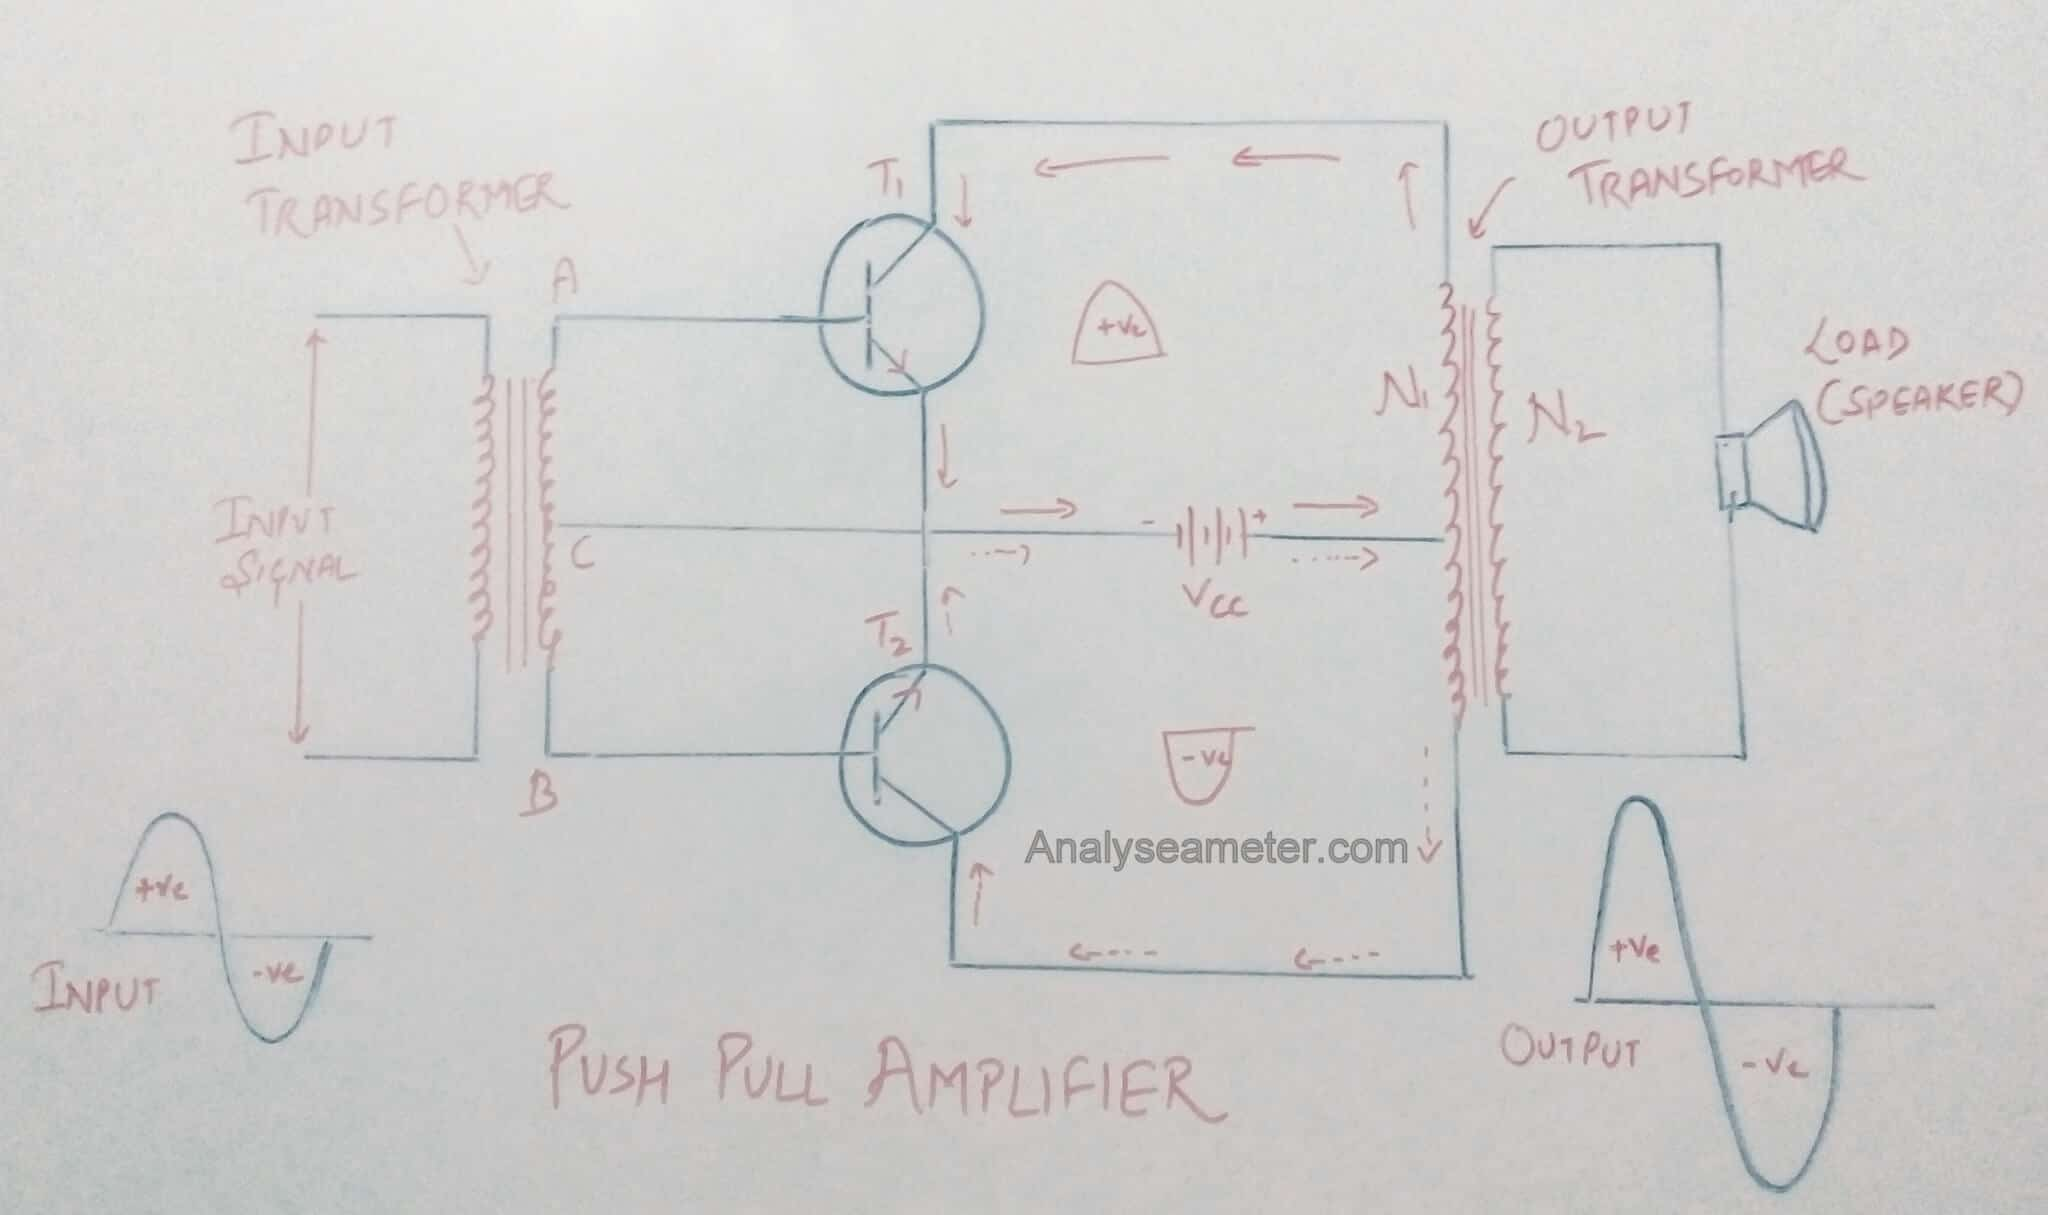 transistor schematic diagram html with Push Pull  Lifier Circuit Operation Advantages And Disadvantages on Permanent Mag  Dc Hub Motor Tuning besides Rgb Led also Tl084 Op   Wiring Diagrams furthermore Mini Tesla Coil Plasma Speaker Kit 15W Electronic Music DIY Project Parts P 1161900 further Audio.